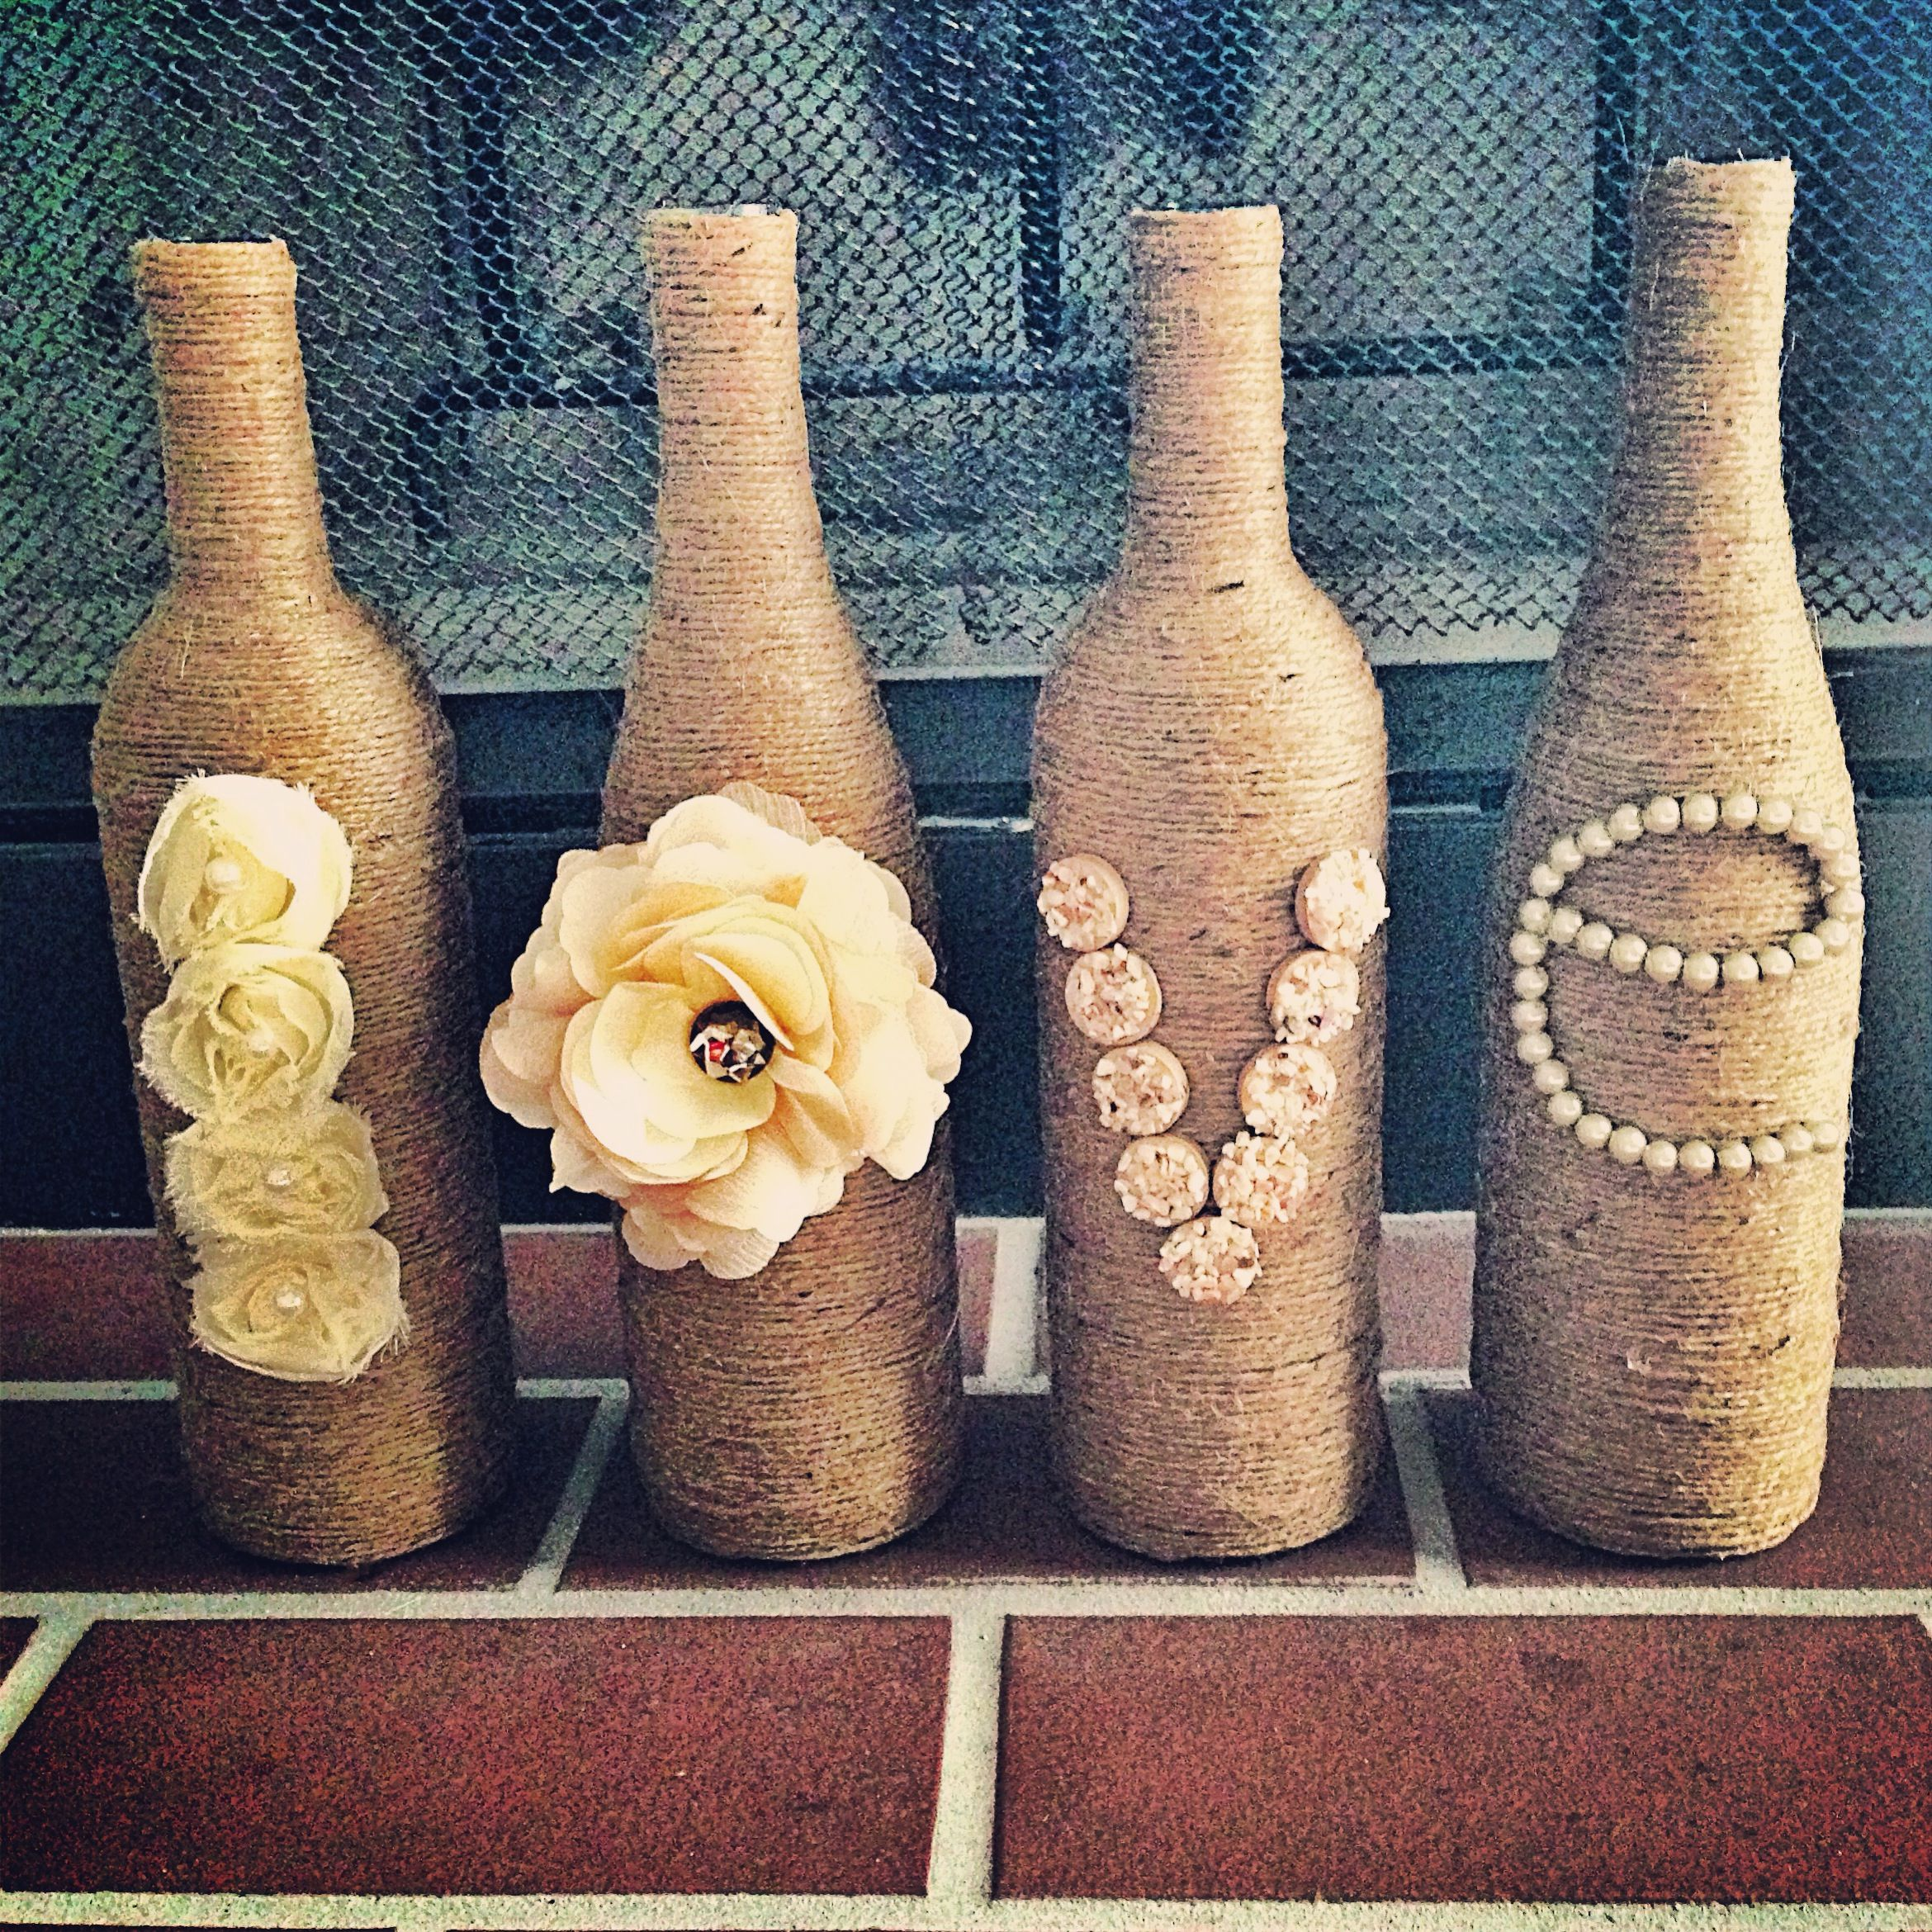 Wine bottles and twine...just saw this exact thing today in a store for sale - super cute! they alternated twine and white rope between letters (L - twine, O-white rope, etc)